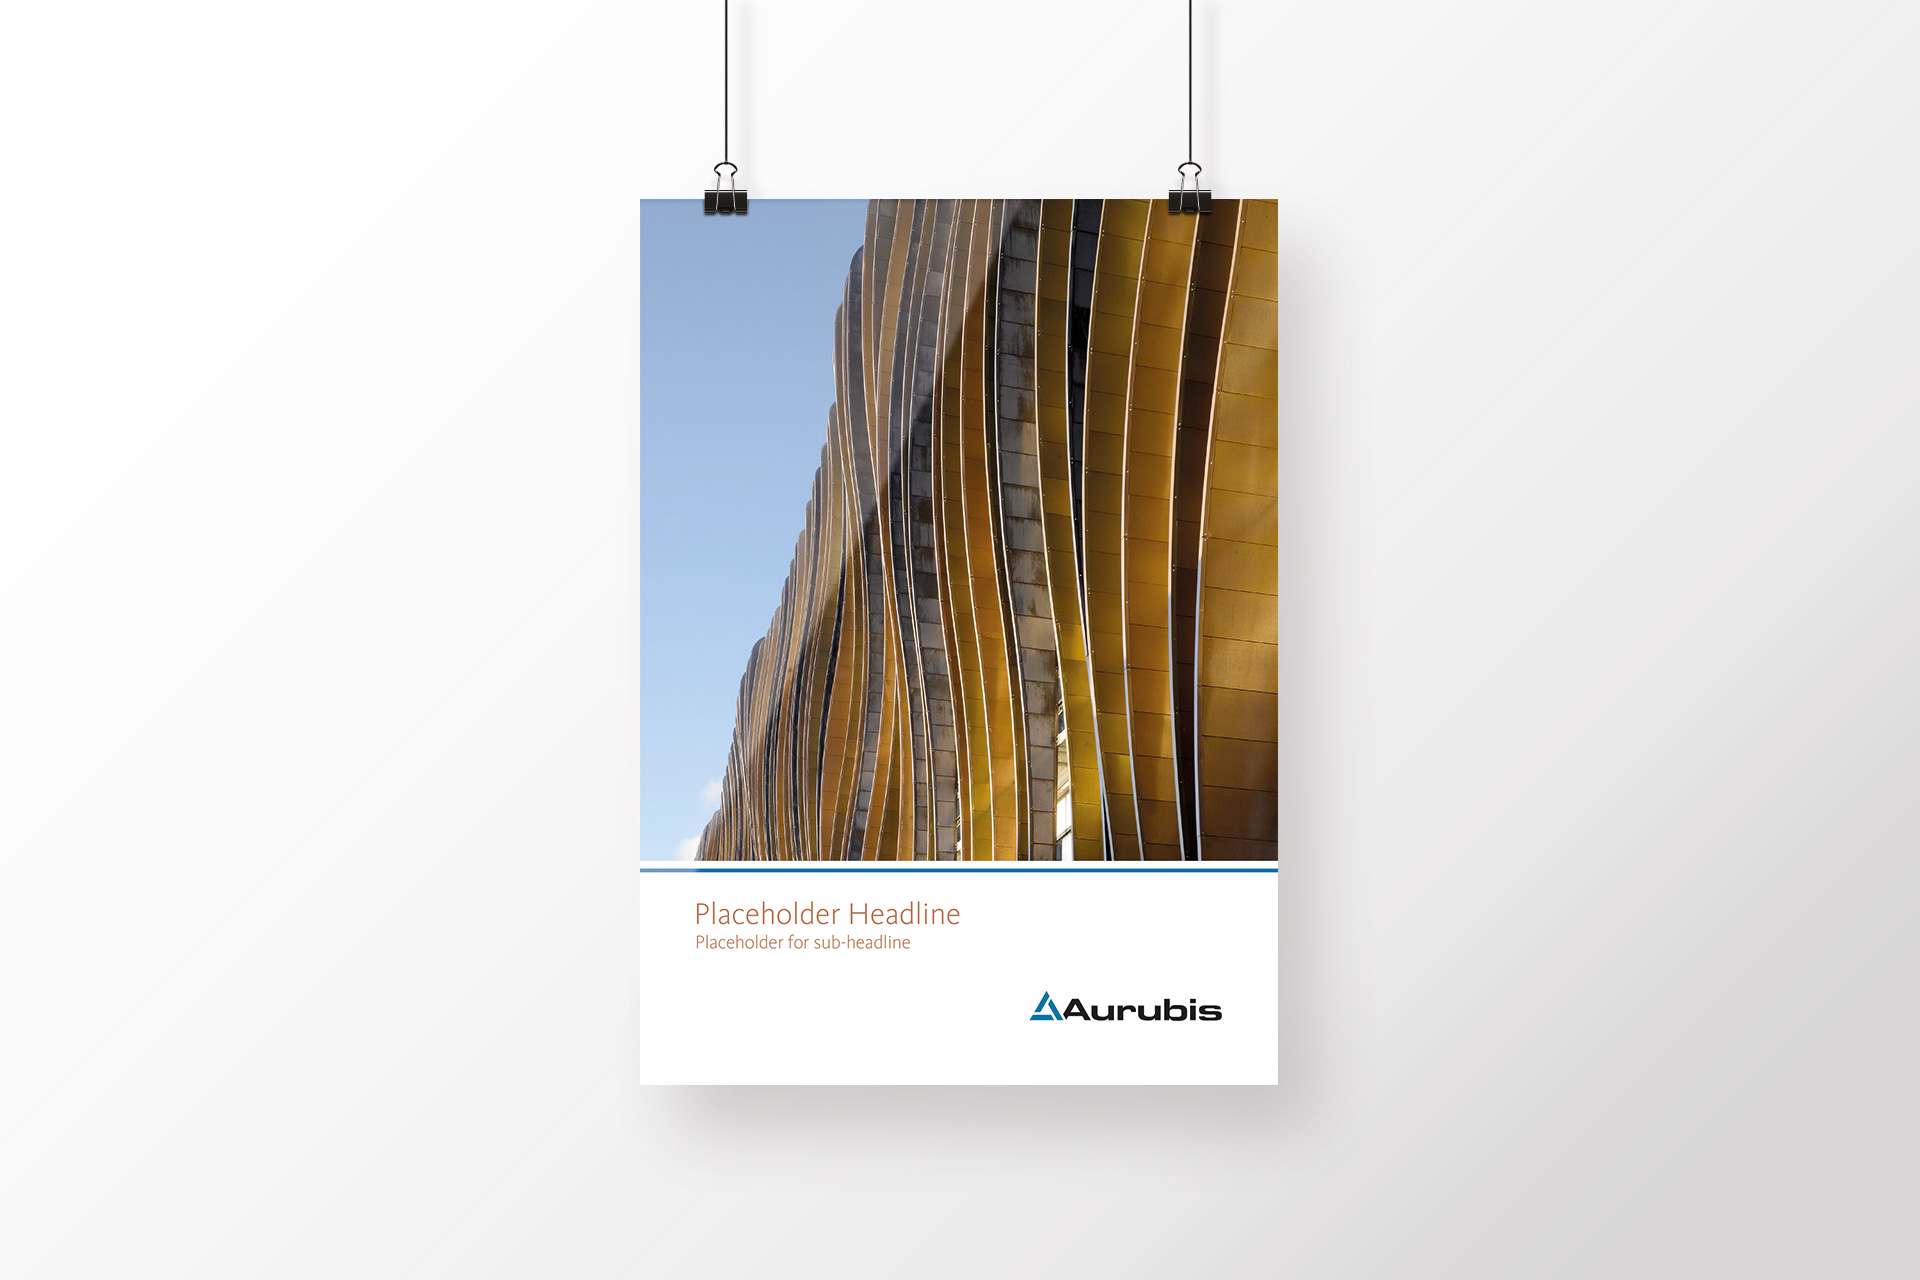 aurubis-corporate-design posterdesign